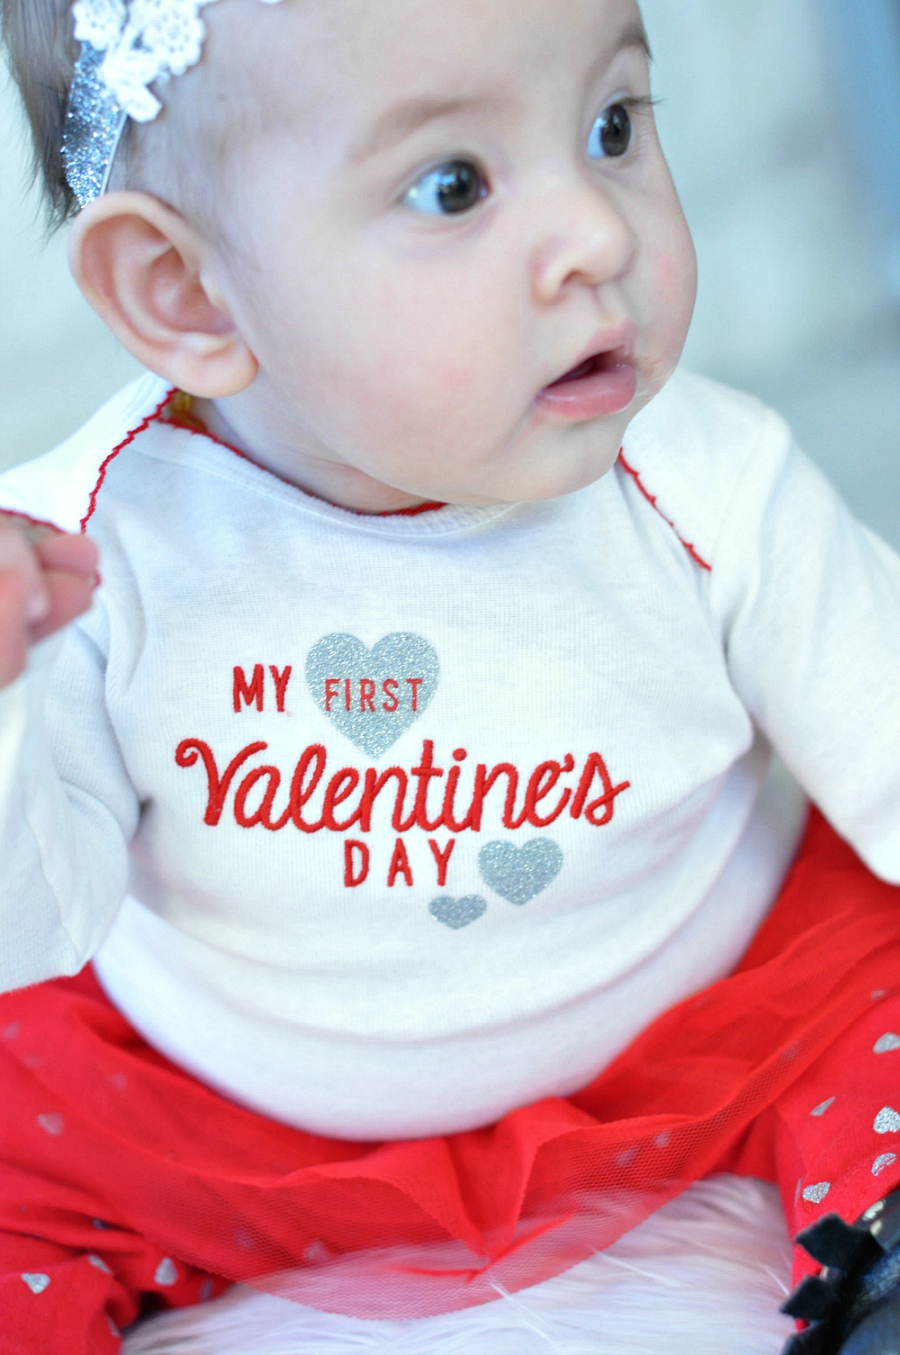 My first valentines outfit